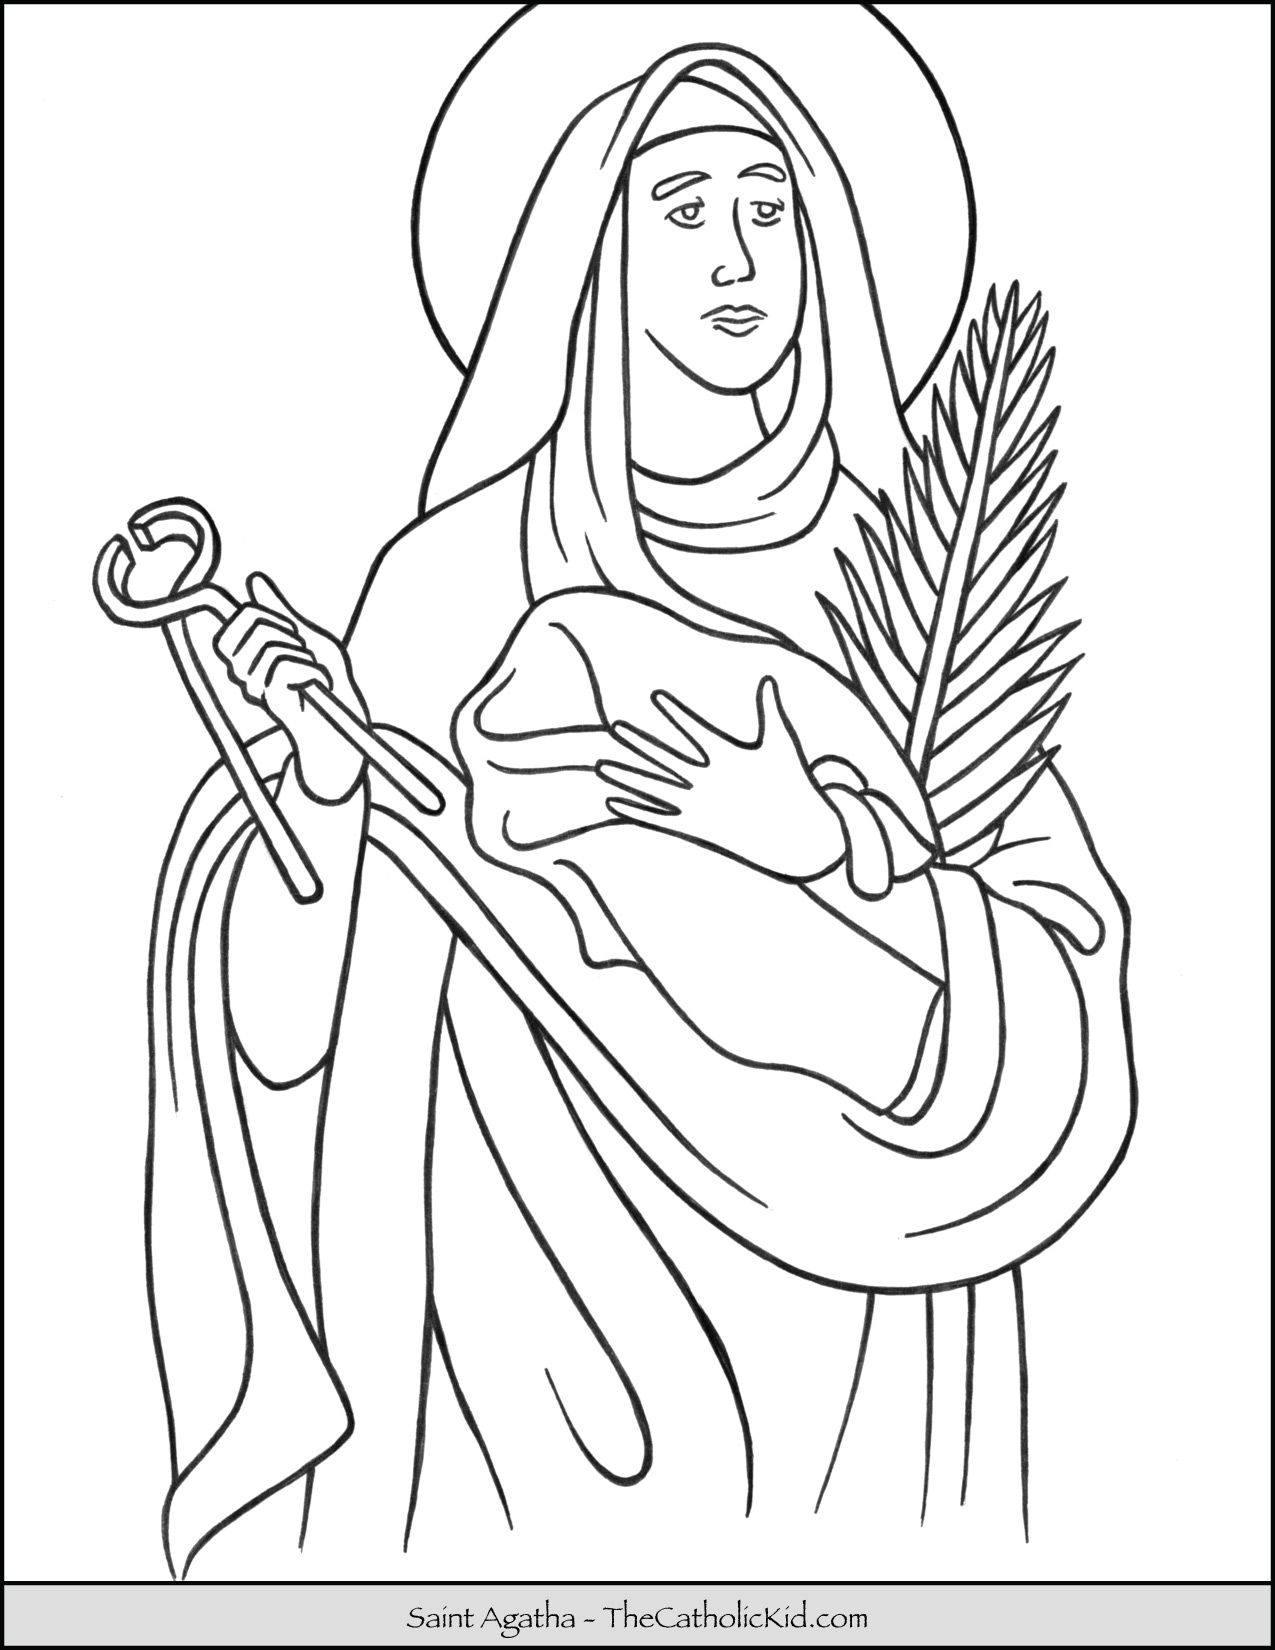 Saint Agatha Coloring Page Thecatholickid Com Saint Coloring